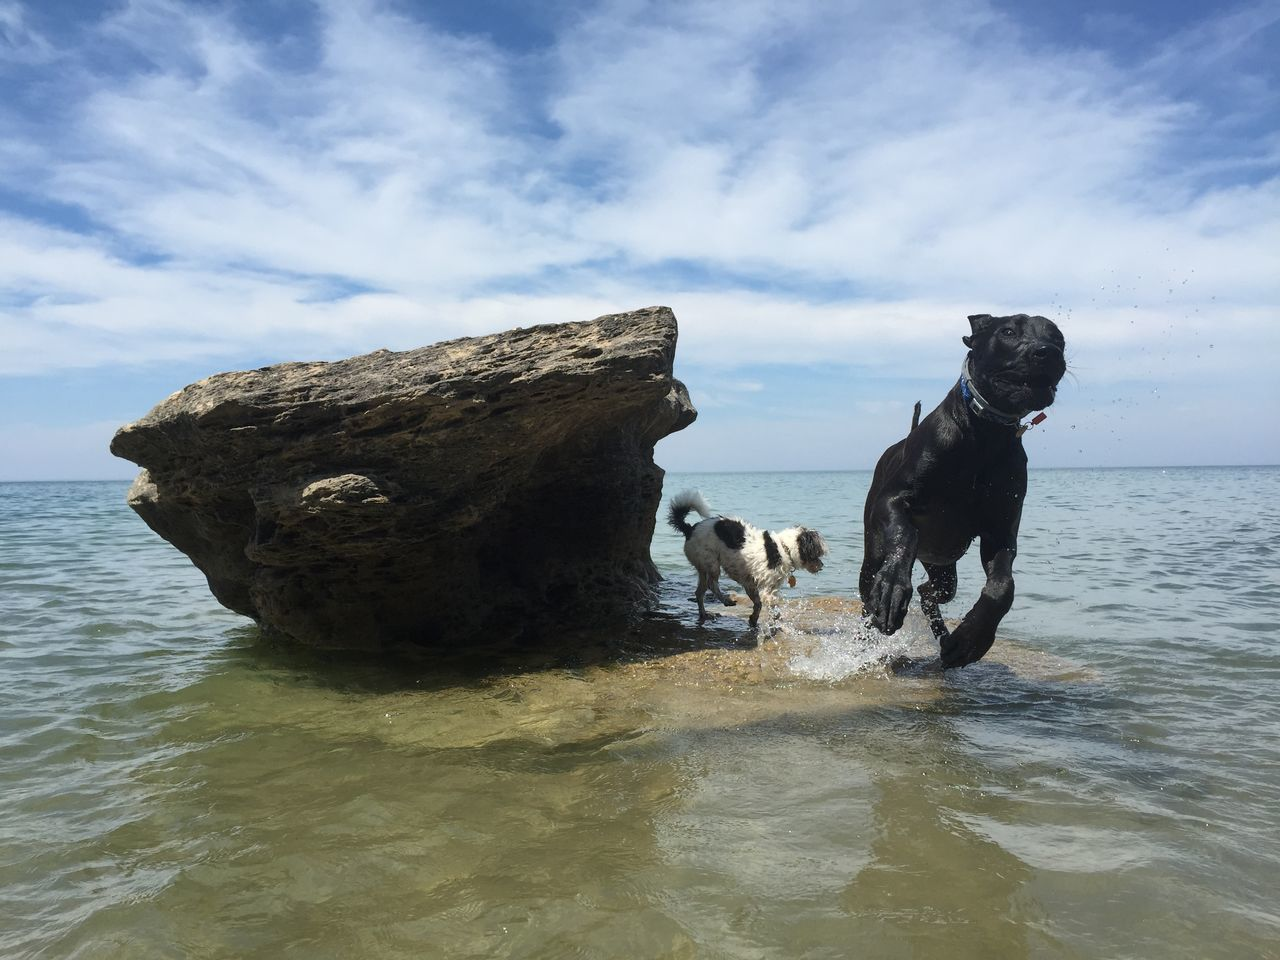 Leap Dog EyeEm Best Shots - Nature IPhoneography Taking Photos The Purist (no Edit, No Filter) Dogs I Love My Dog Summer Dogs Beach Fun EyeEm Nature Lover Michigan My Best Photo 2015